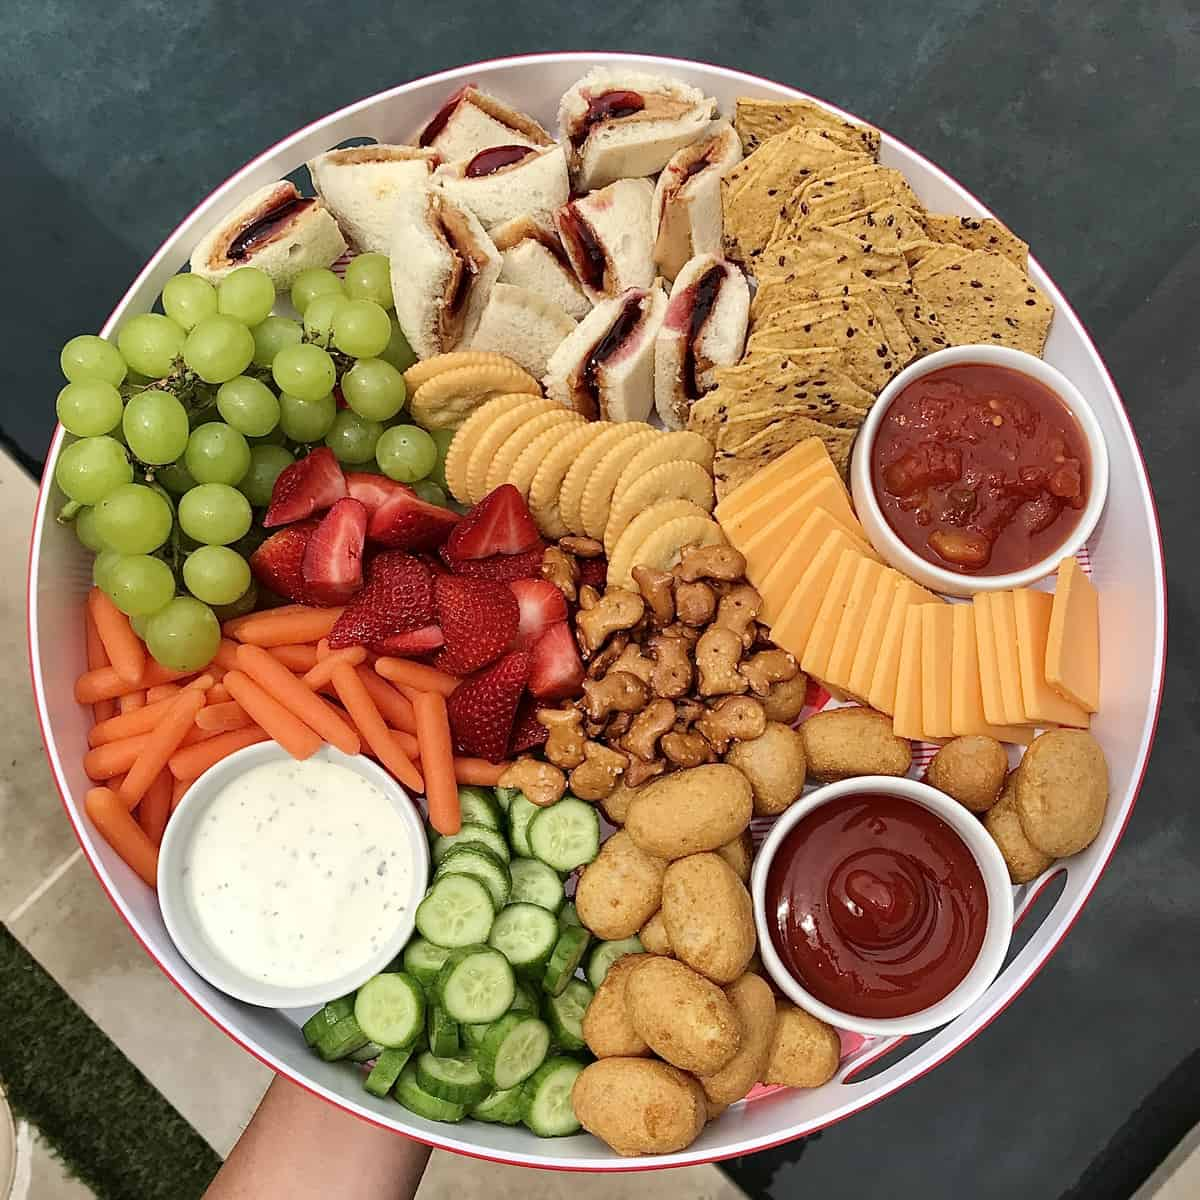 PB&J and Mini Corndog Snack Tray by The BakerMama